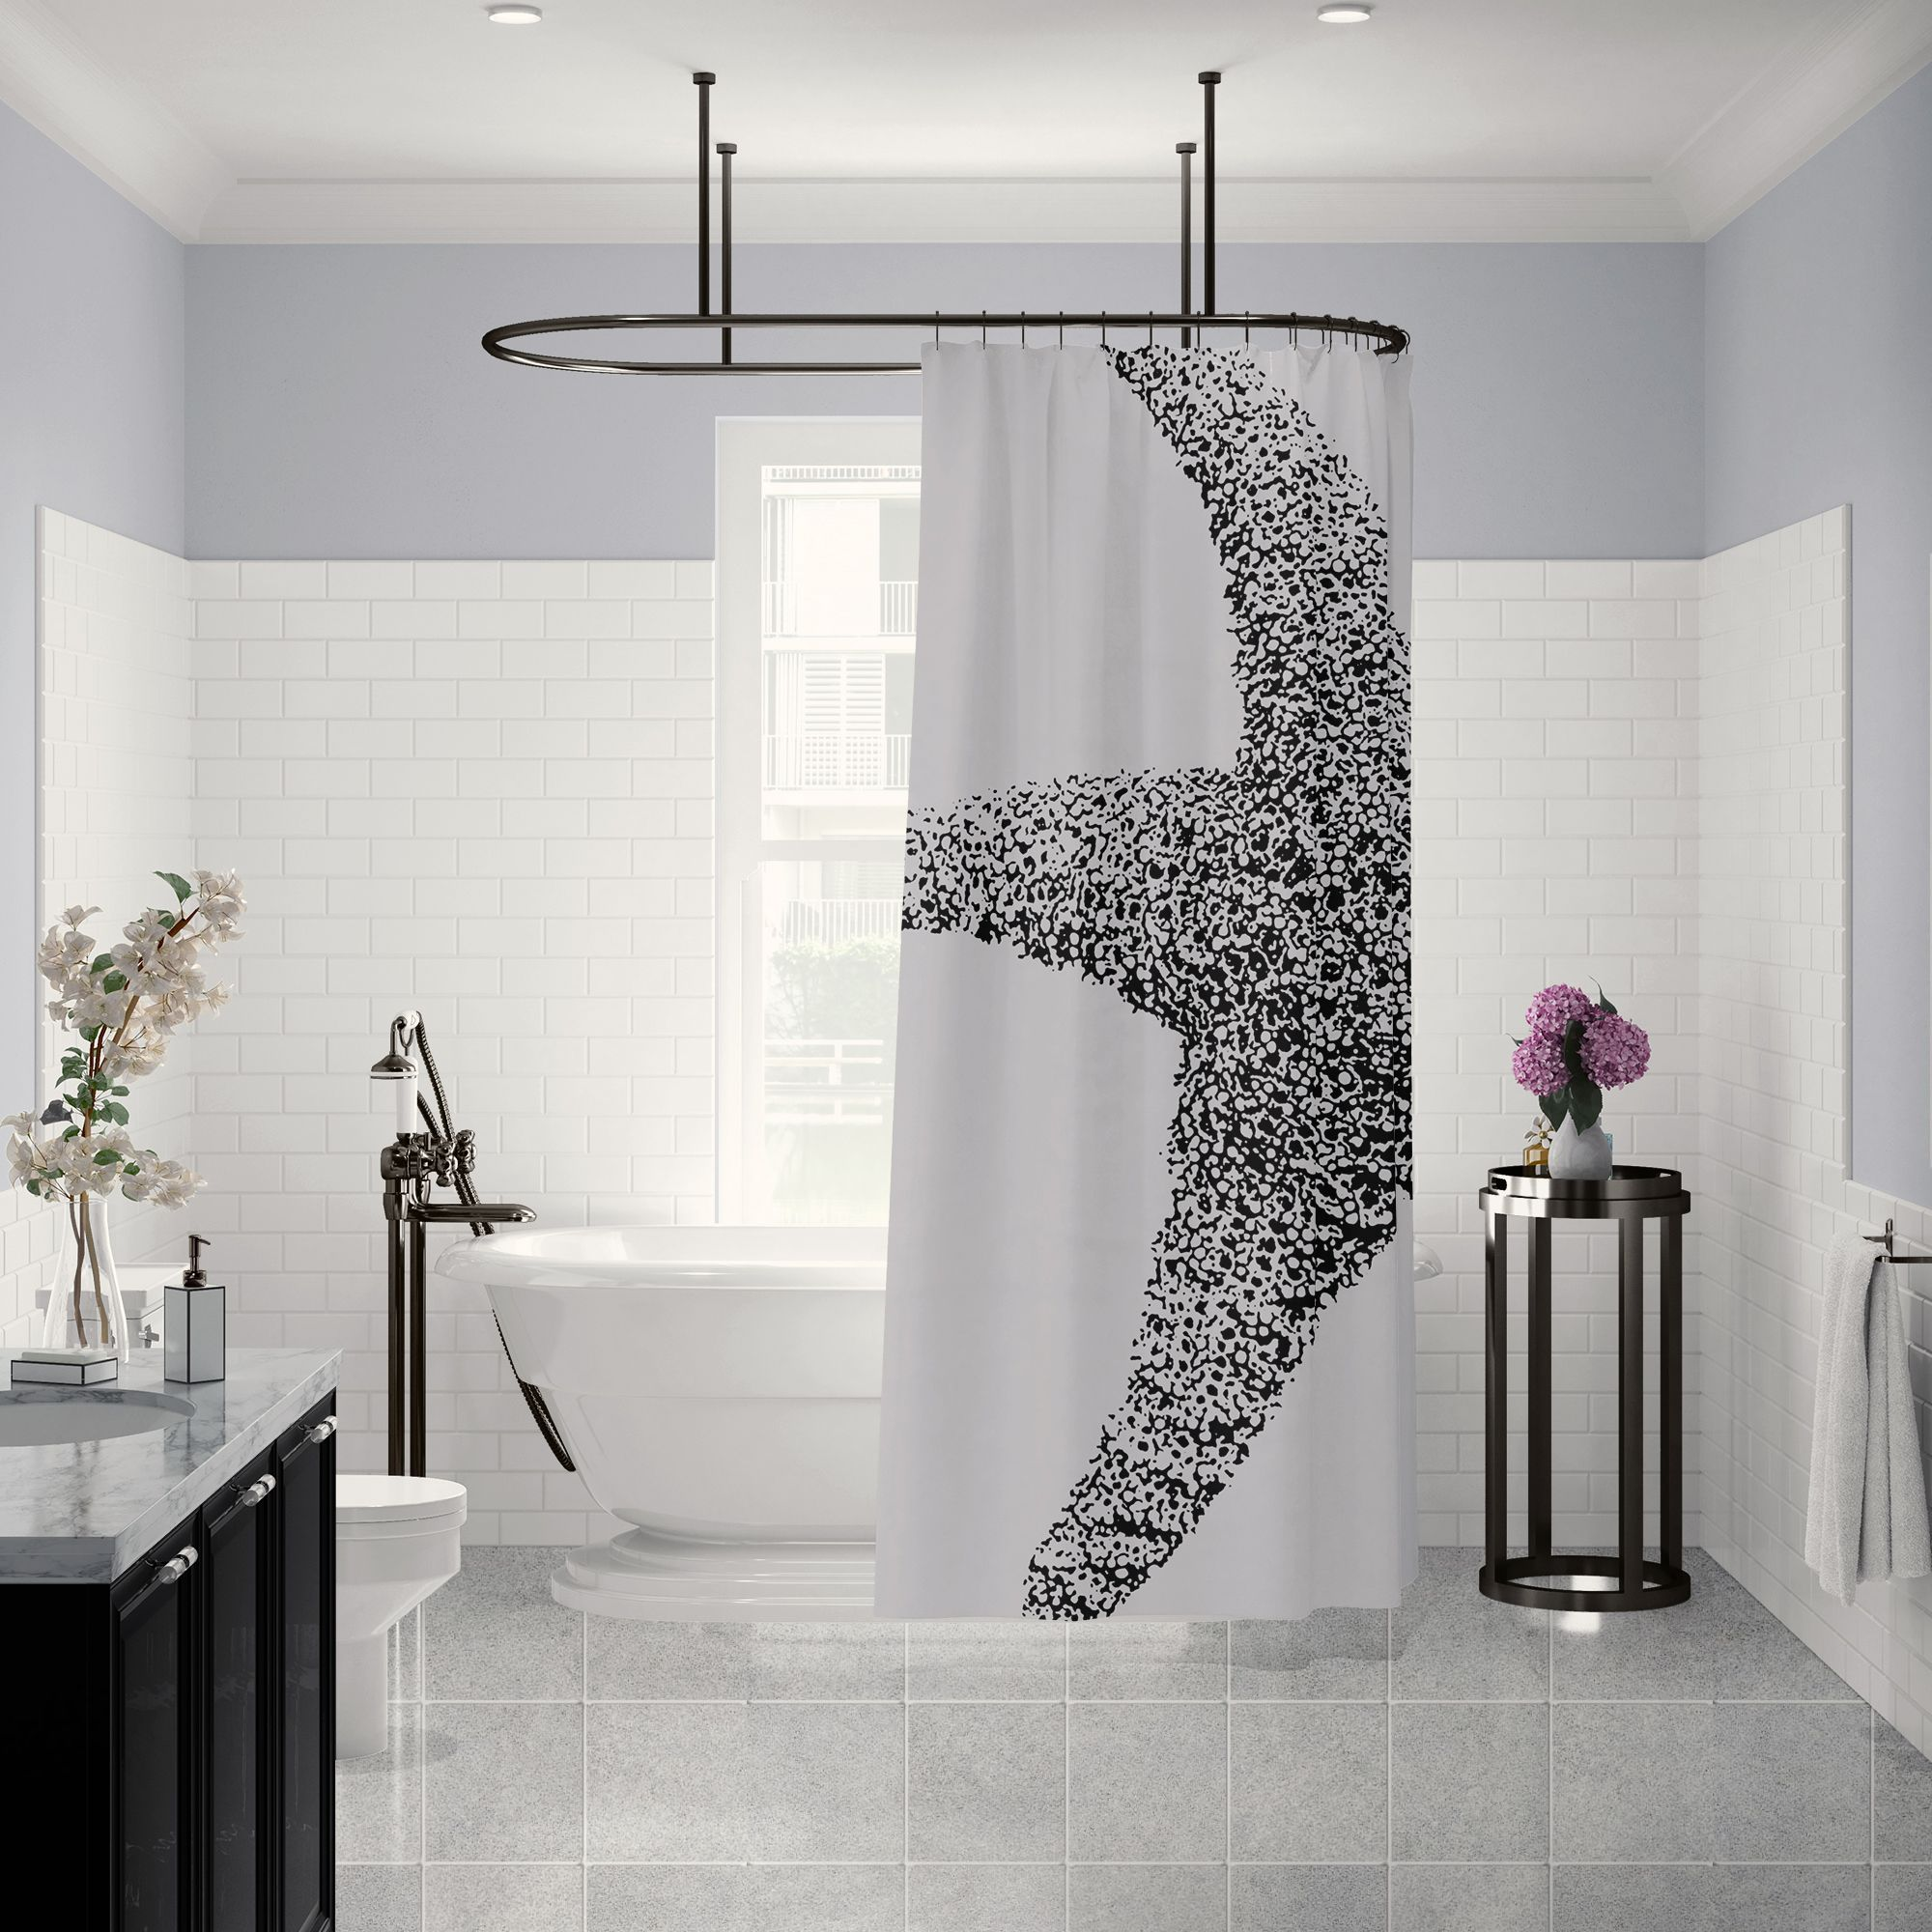 Check Out This Bathroom With Large Scale Starfish Print Shower Curtain This Would Work With Almost Any Co Modern White Bathroom Bathroom Decor Beach Bathrooms